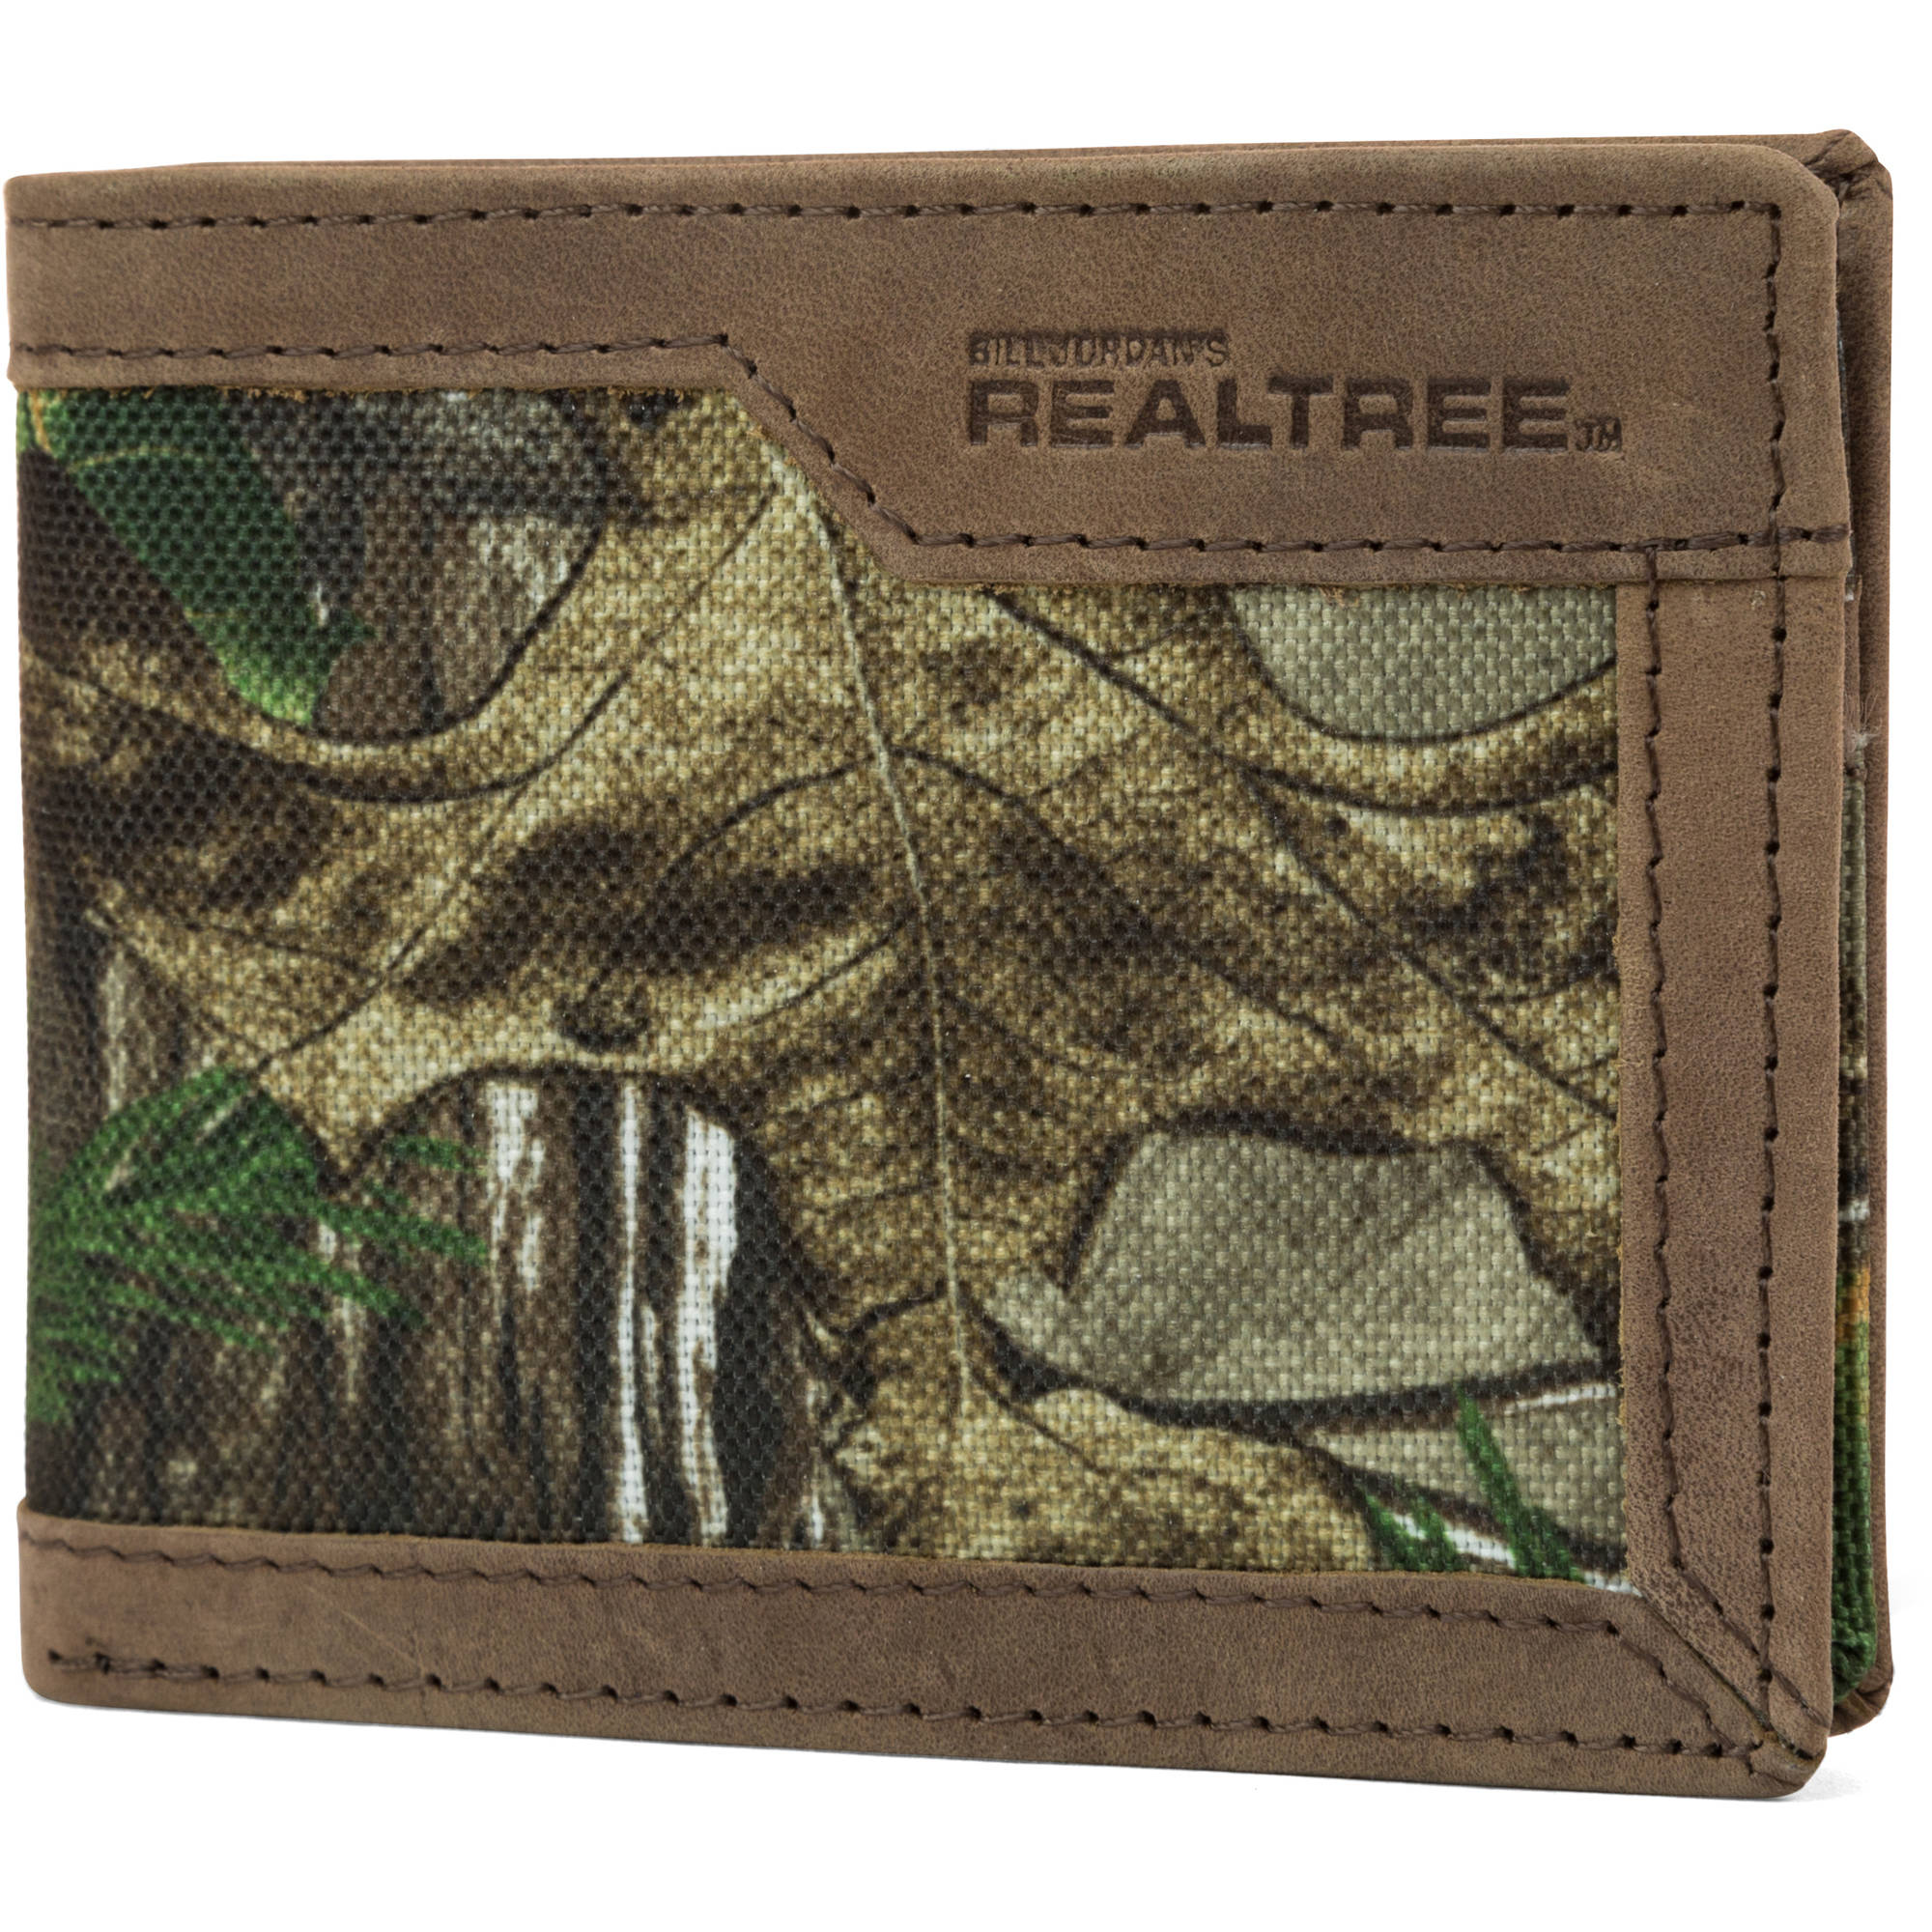 Realtree Men's Billfold Wallet